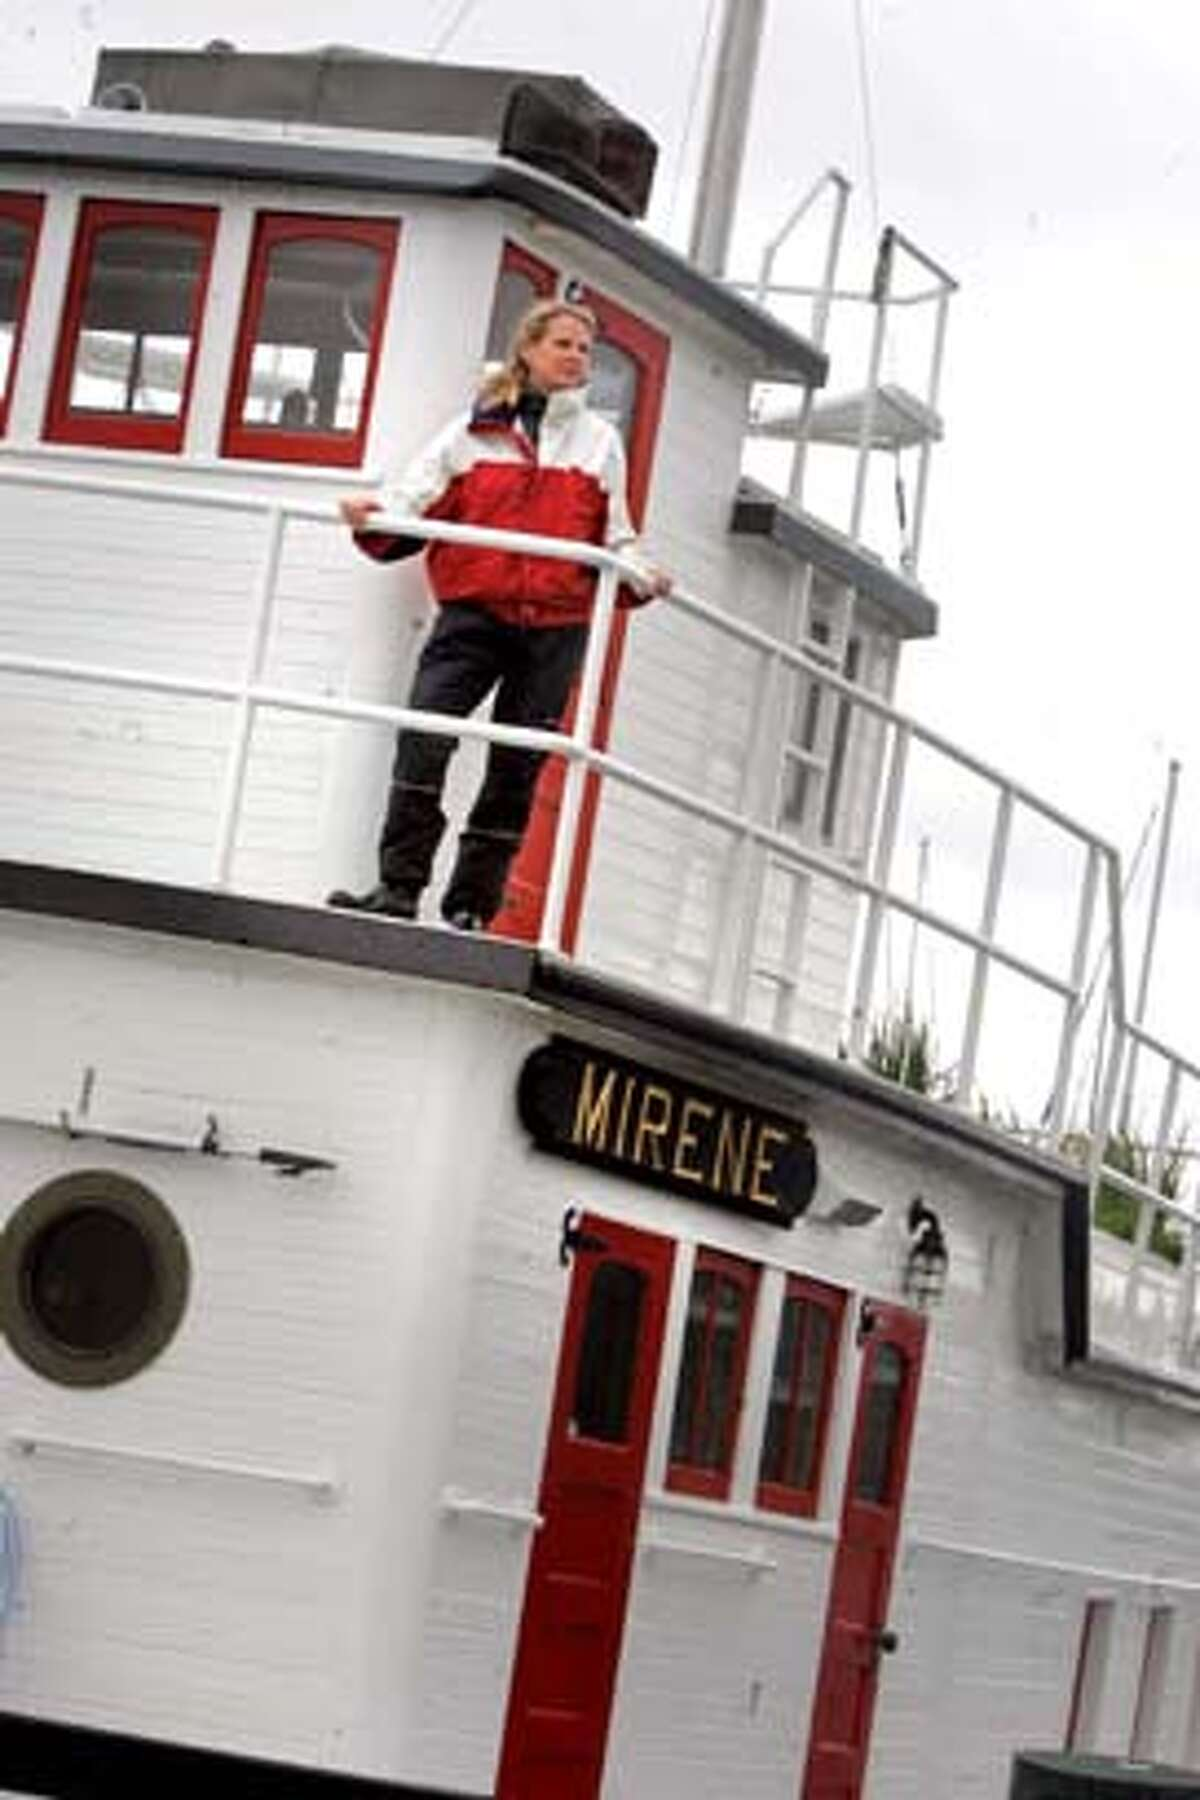 Magazine profile of Ryan Phelan(pictured here on the tugboat she lives on), who recently started her newest venture, DNA Direct, which offers genetic testing kits for home use. The idea is the most controversial of her projects. Married to former Whole Earth Catalogue guru Stewart Brand, Phelan is part of the band of entrepreneurs in the Bay Area who say they can do well (as in piles of money) by doing good work. Event on 12/01/05 in San Francisco Photo: Mark Costantini /San Francisco Chronicle